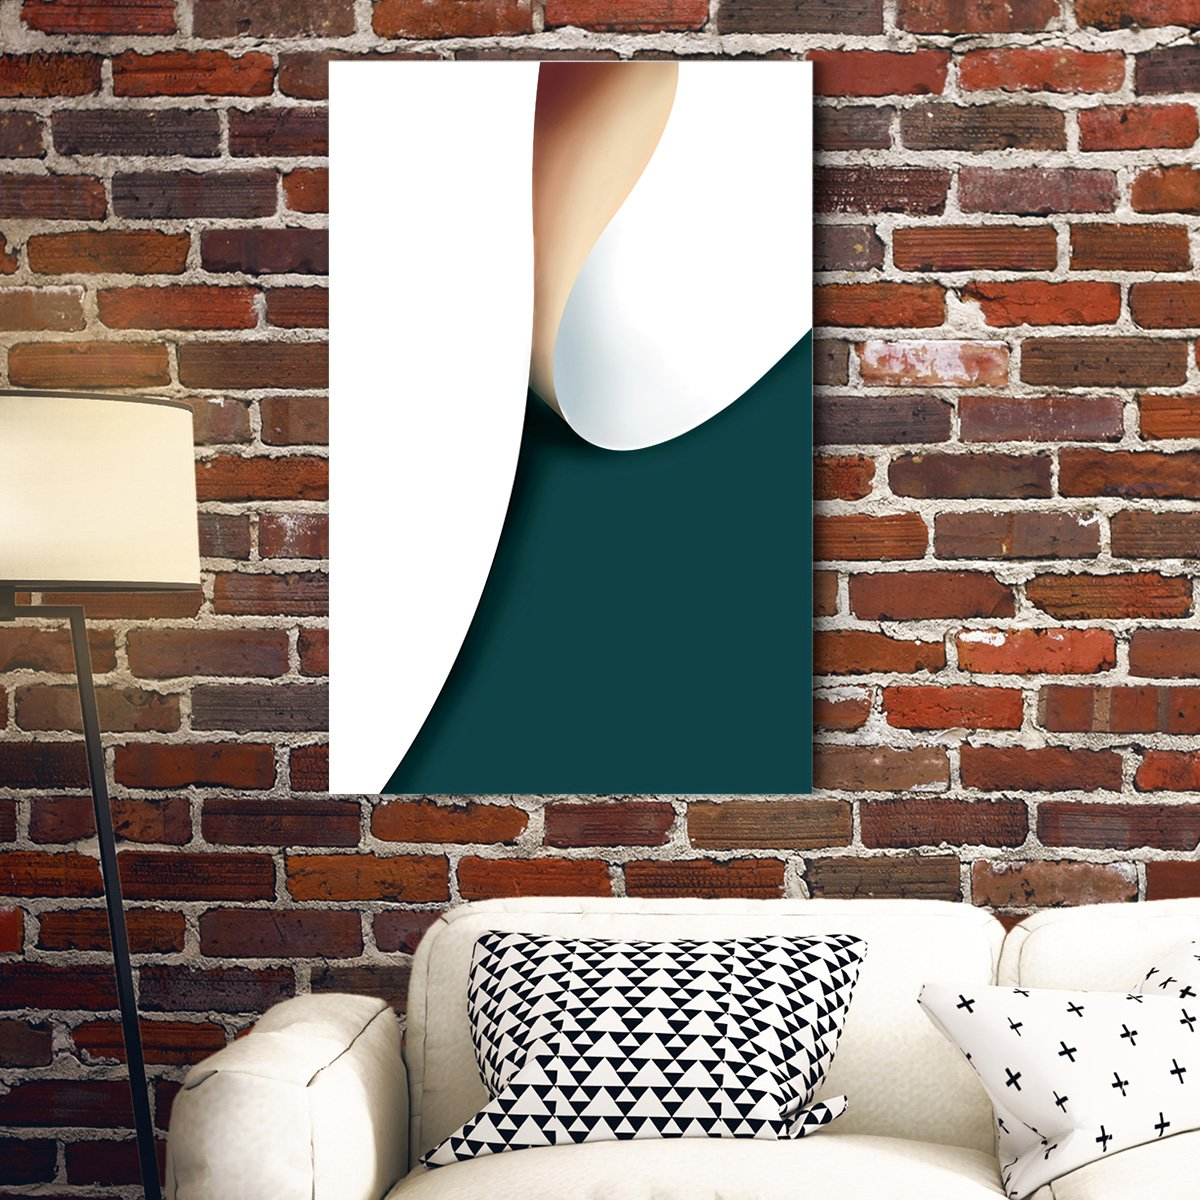 Color rhythm - abstract decorative painting - living room 002